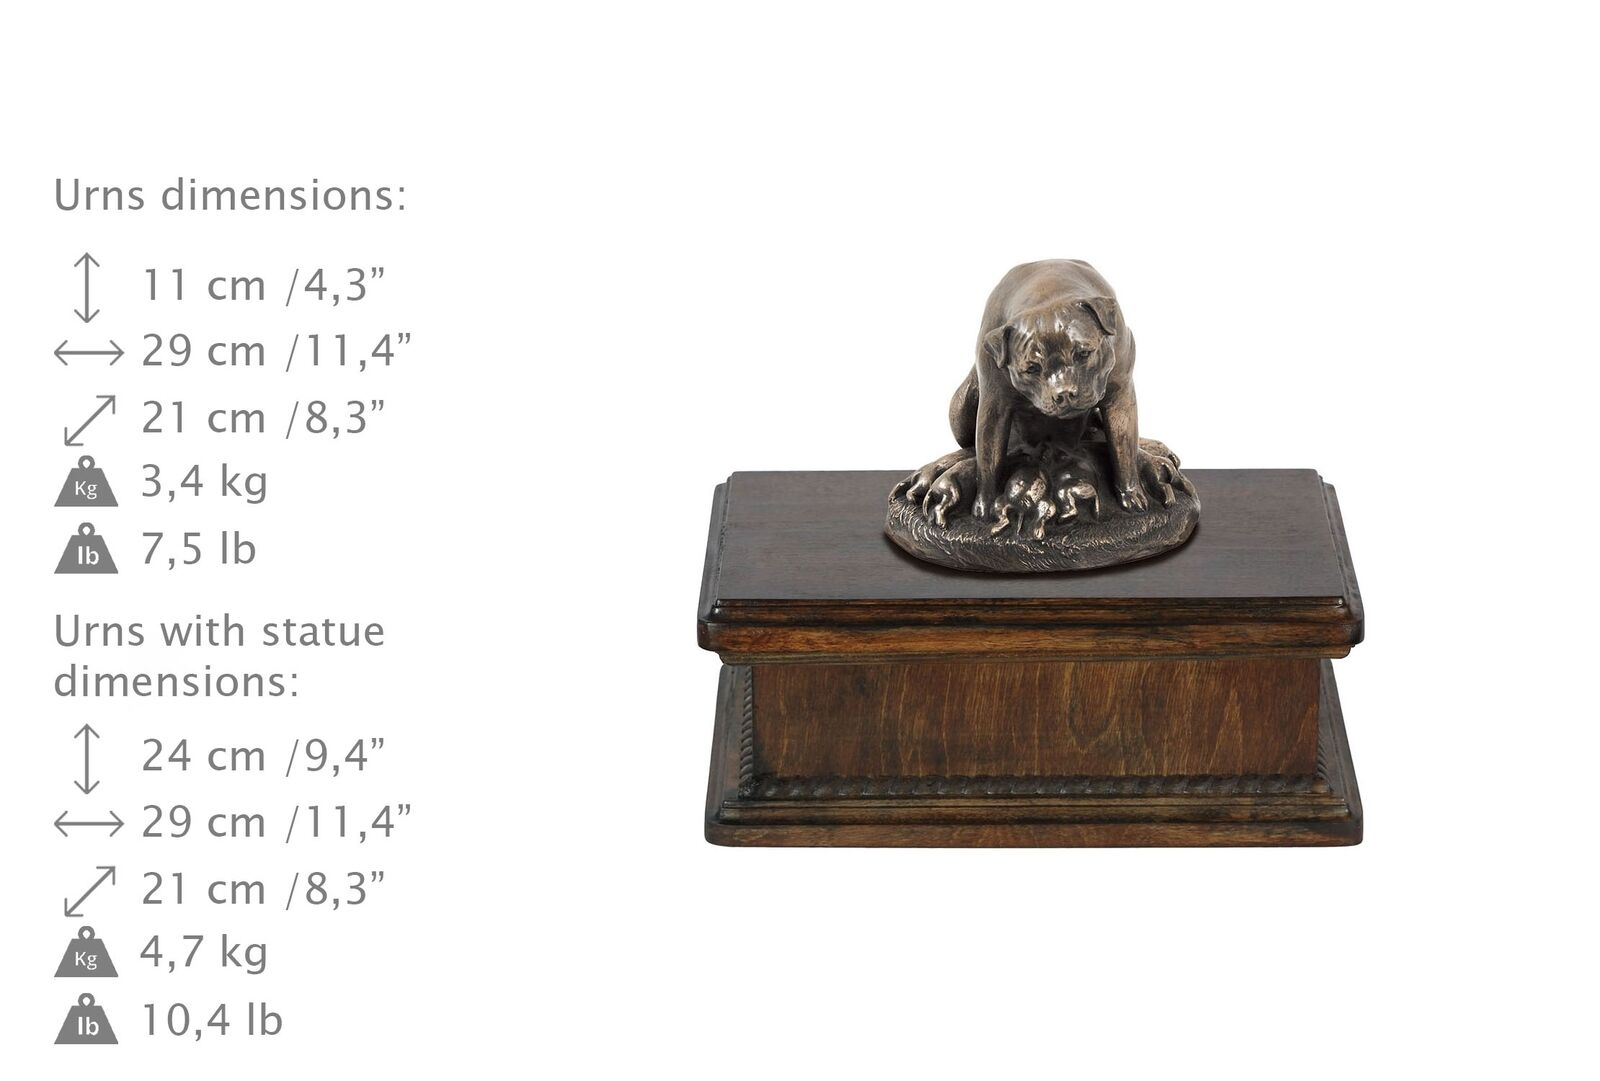 rossotweiler type 2 2 2 - exclusive urn with dog statue, High Quality, Art Dog 6b8412